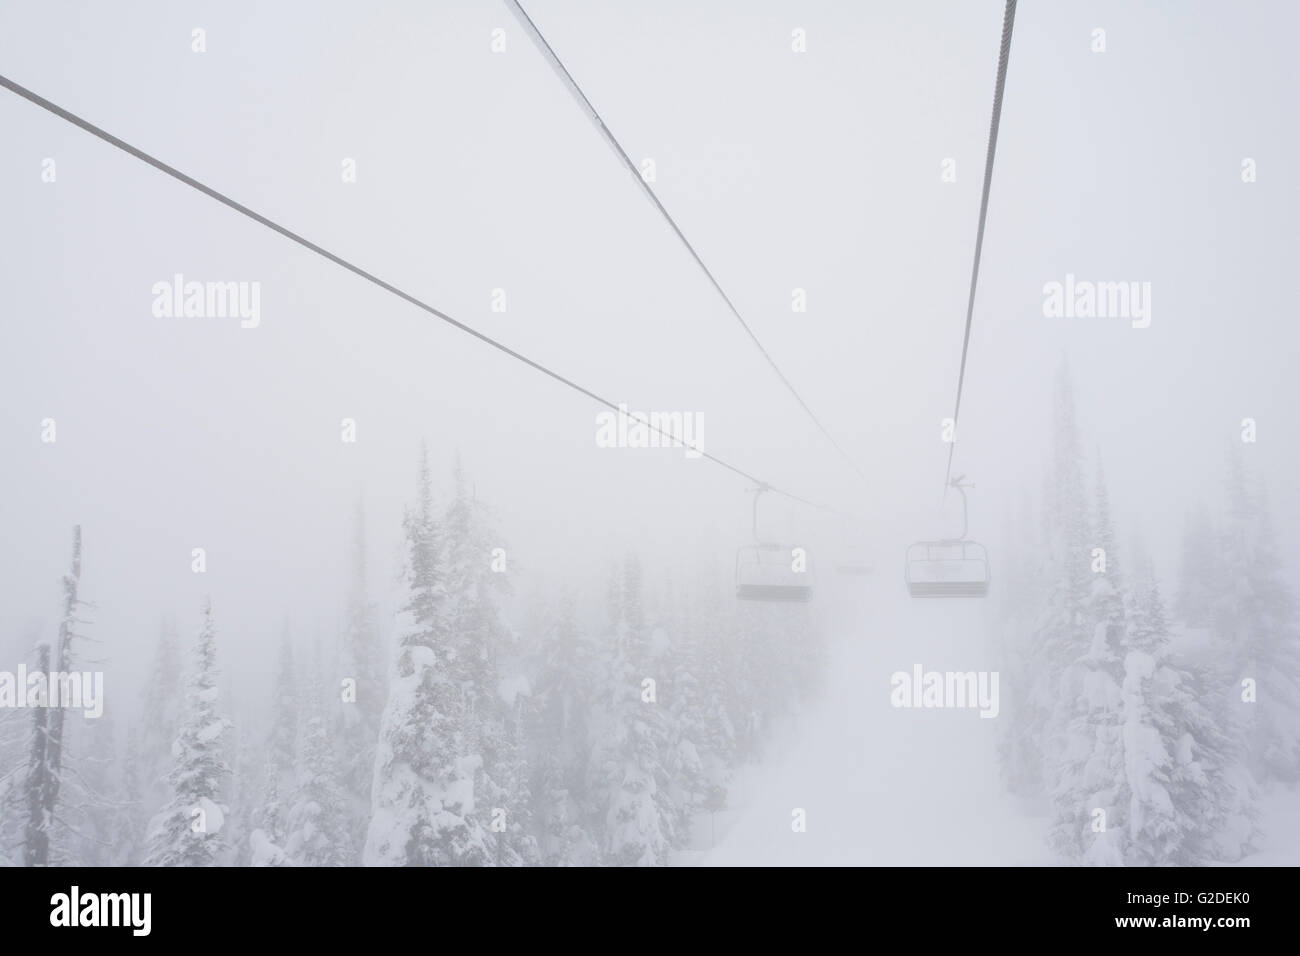 Foggy Snowy Trees and Ski Chairlift in Distance Stock Photo